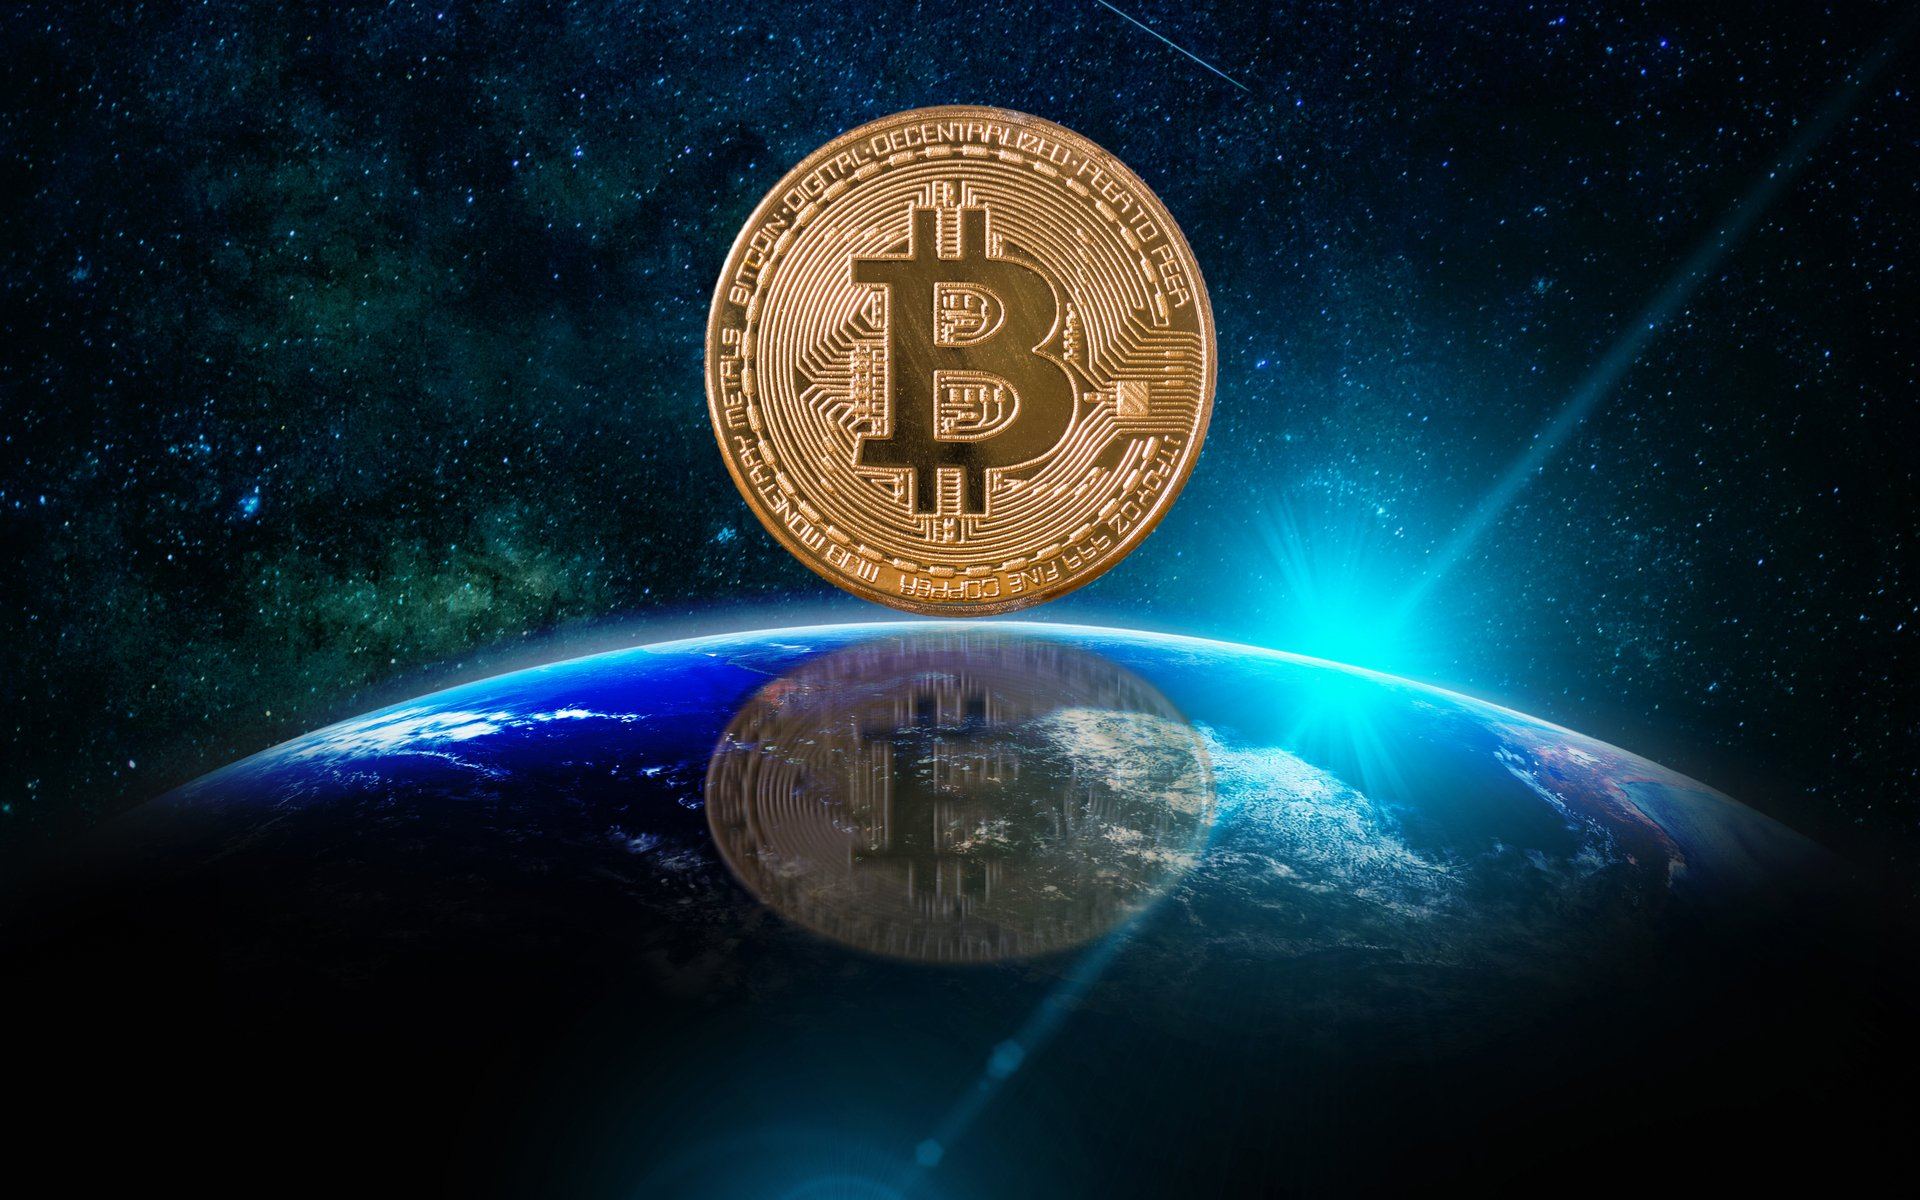 Bitcoin: The Native Currency of the Internet